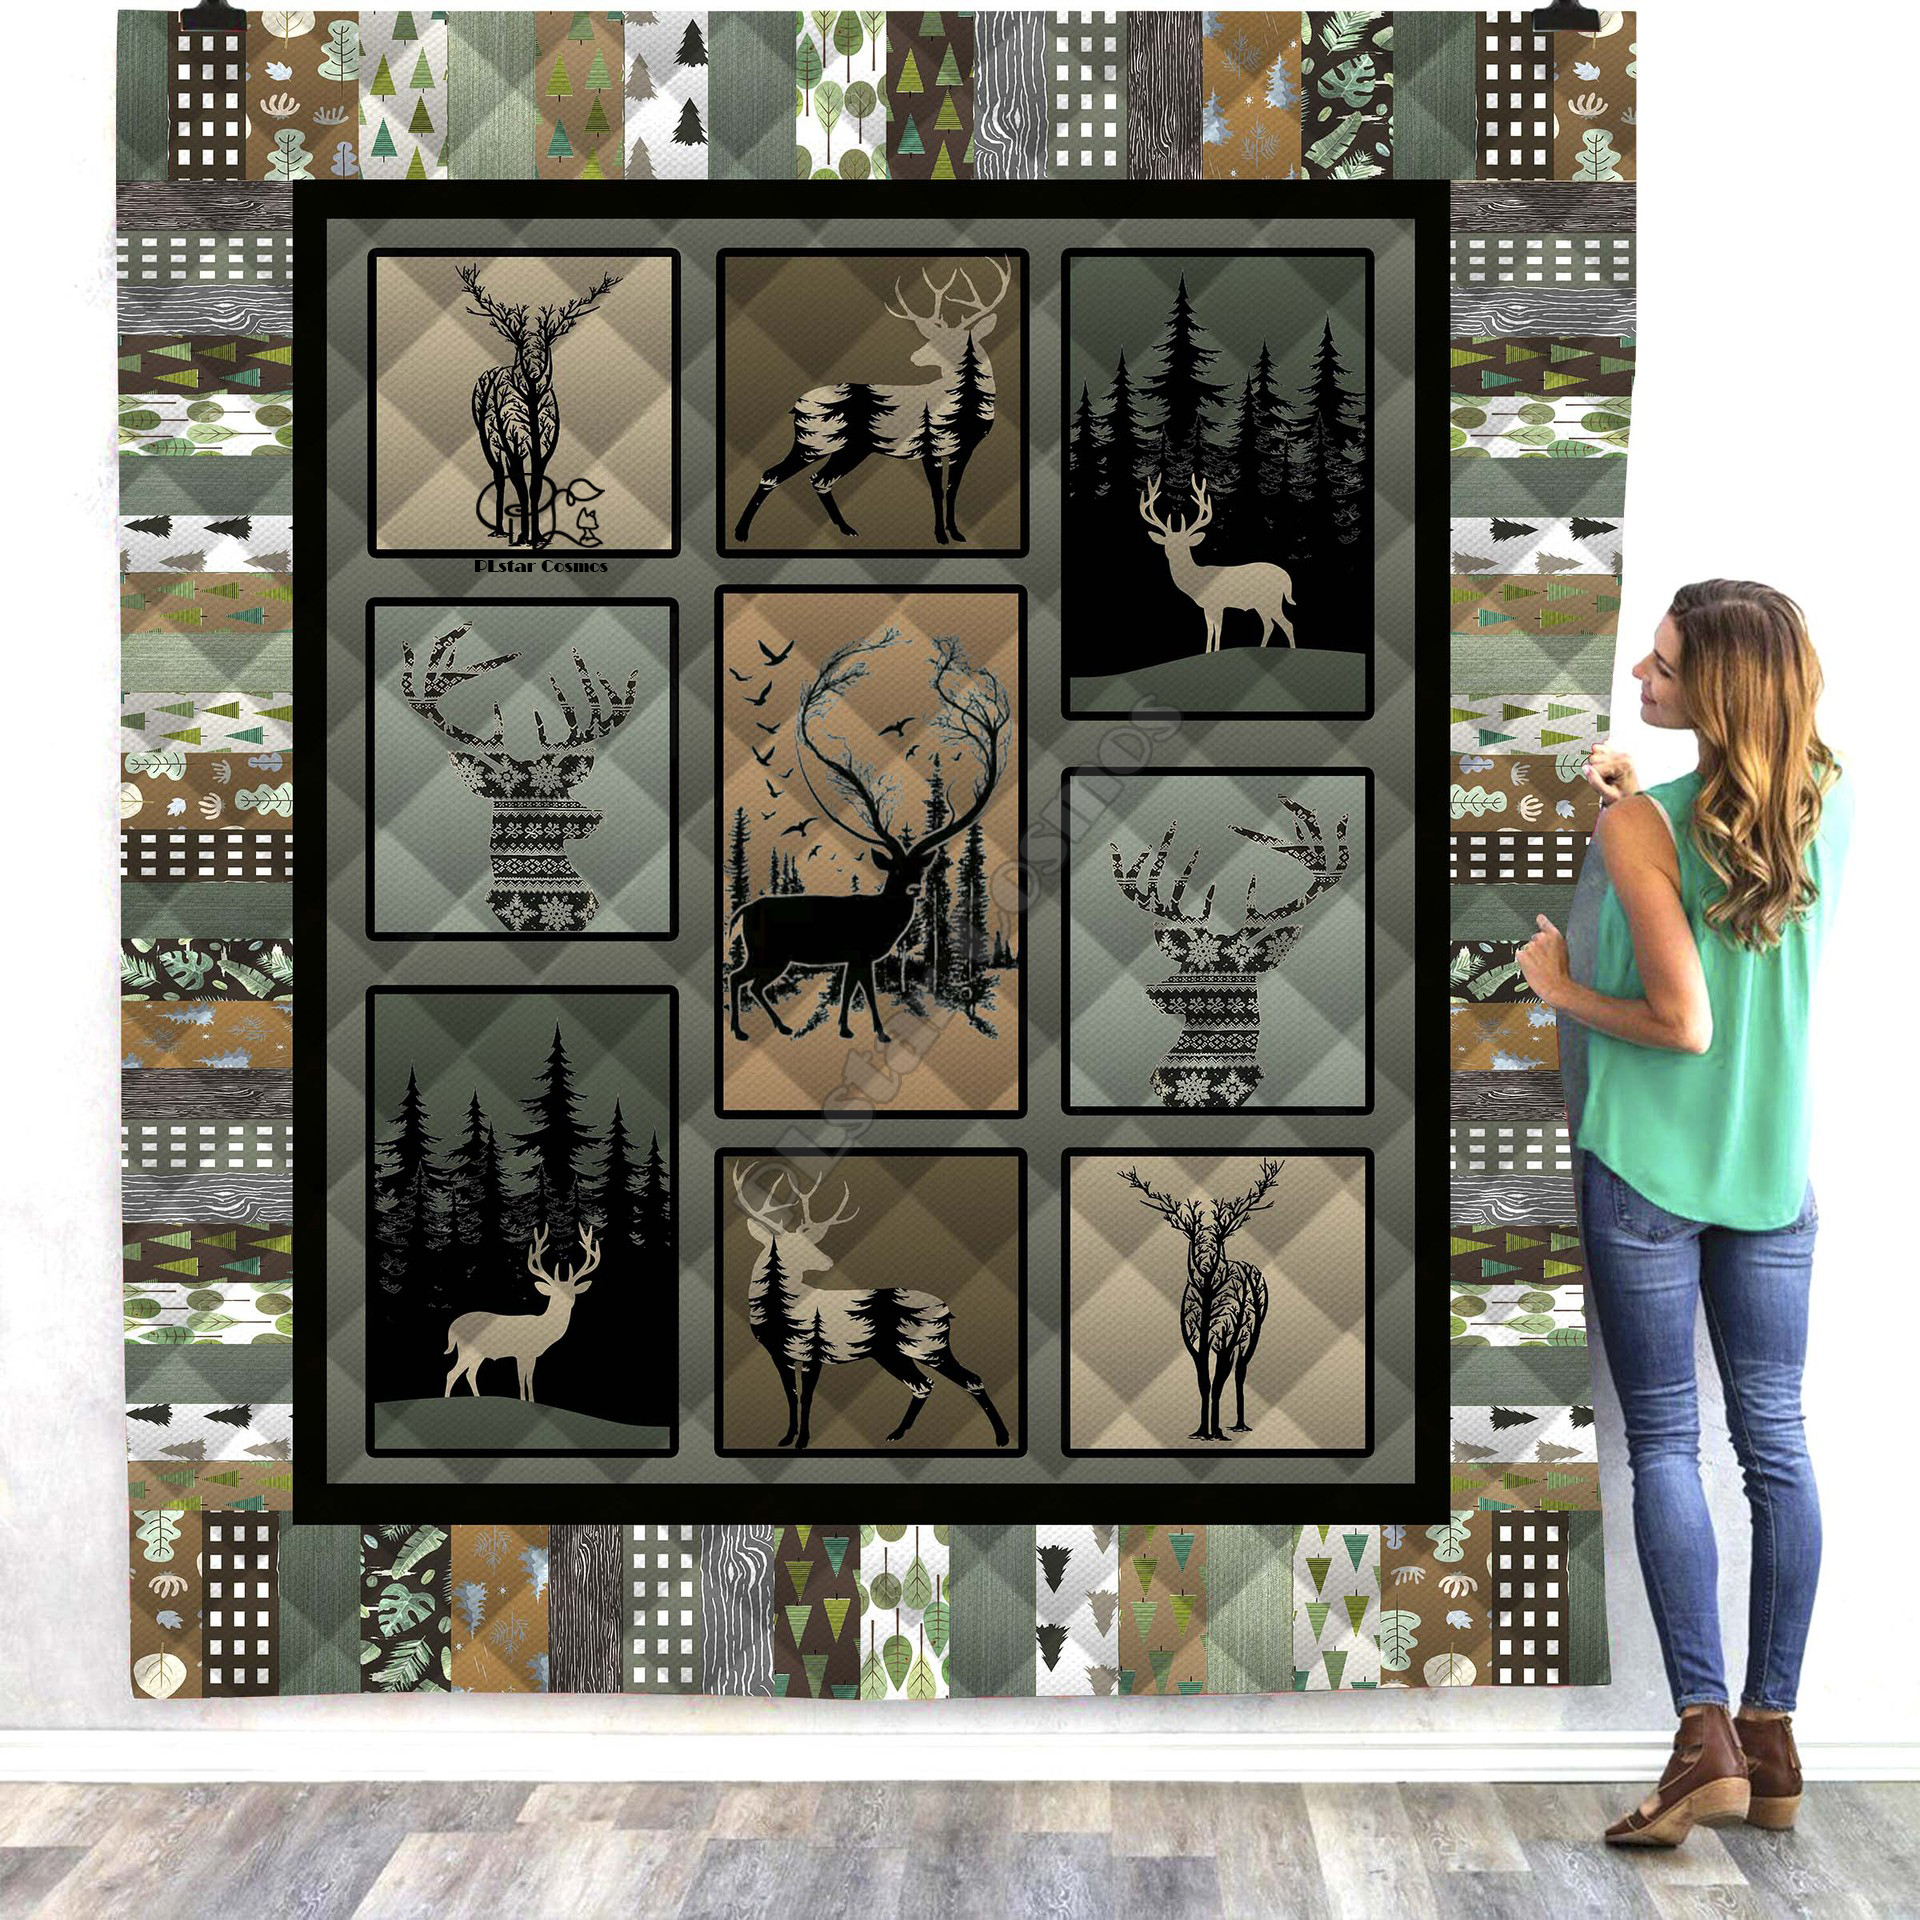 Hunter Deer Viking Tattoo Deer 3d Quilt Blanket Bedding Throw Soft Warm Thin Office Blanket With Cotton Style 3 Quilts Aliexpress